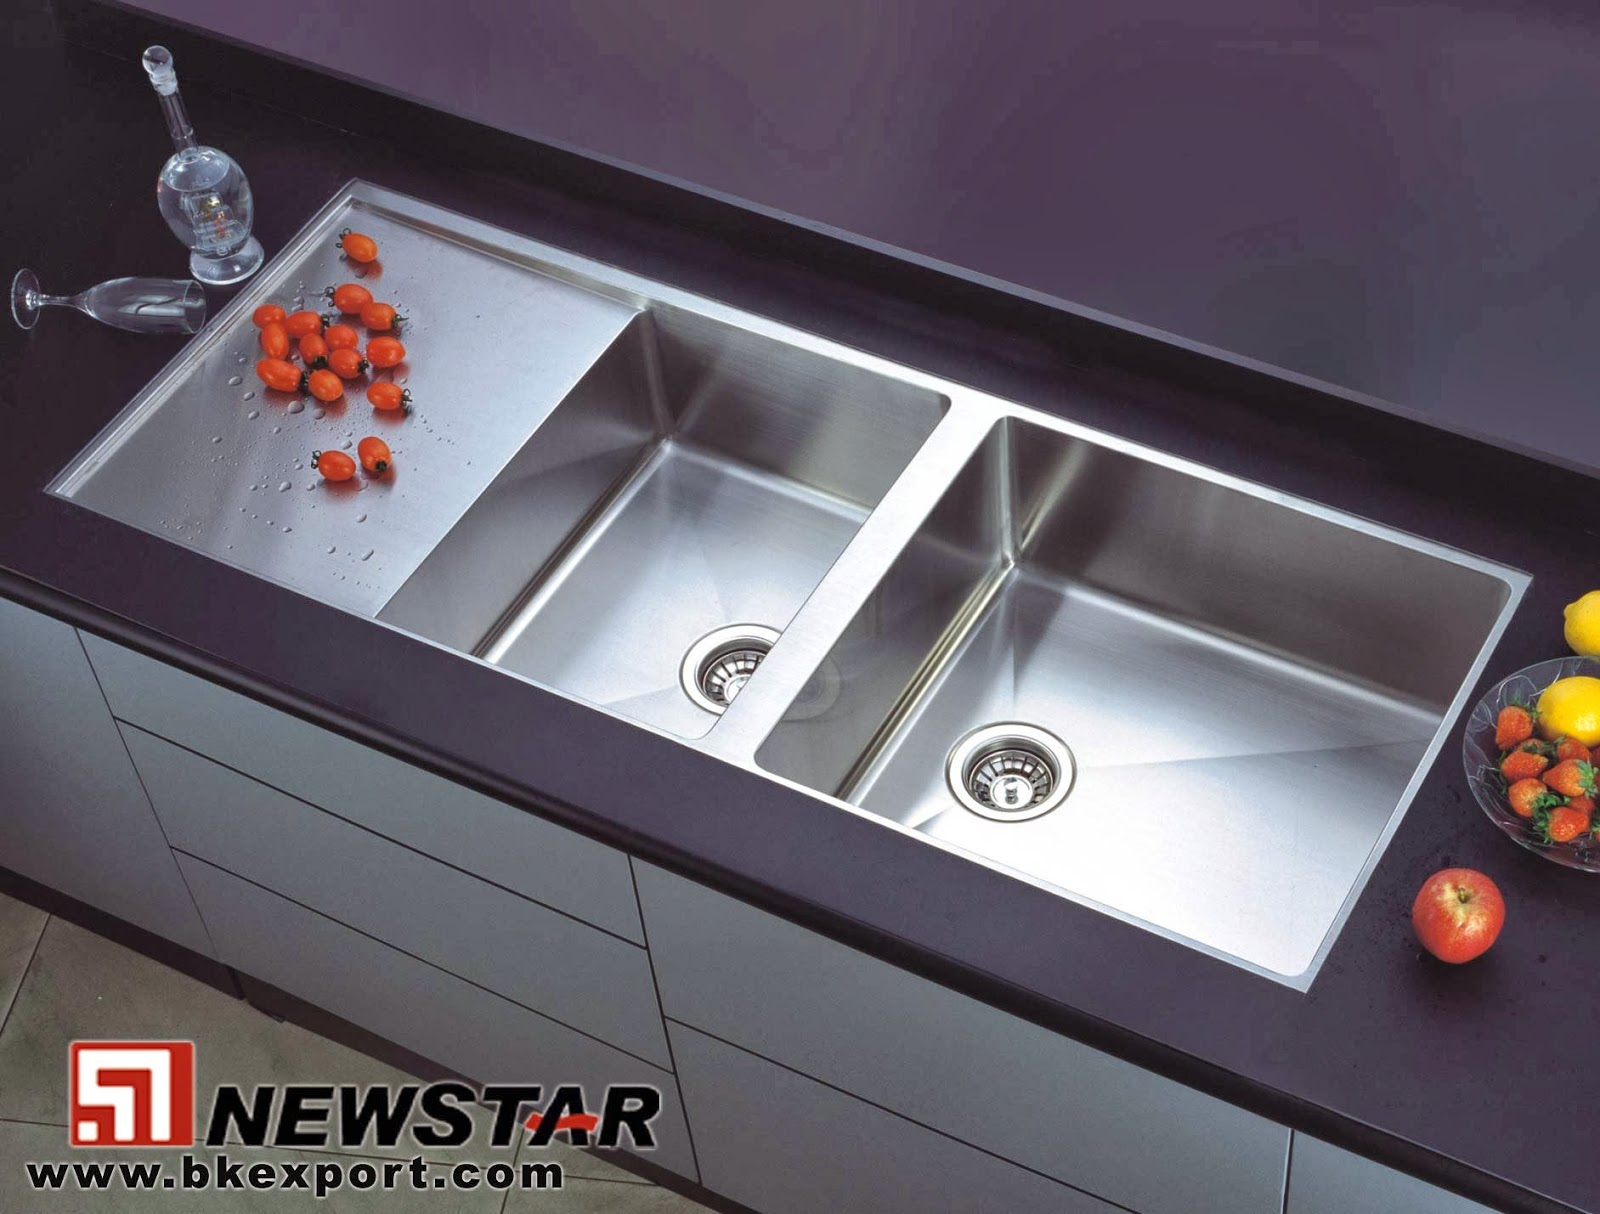 top rated stainless steel kitchen sinks top stainless steel kitchen sink brands review 9493